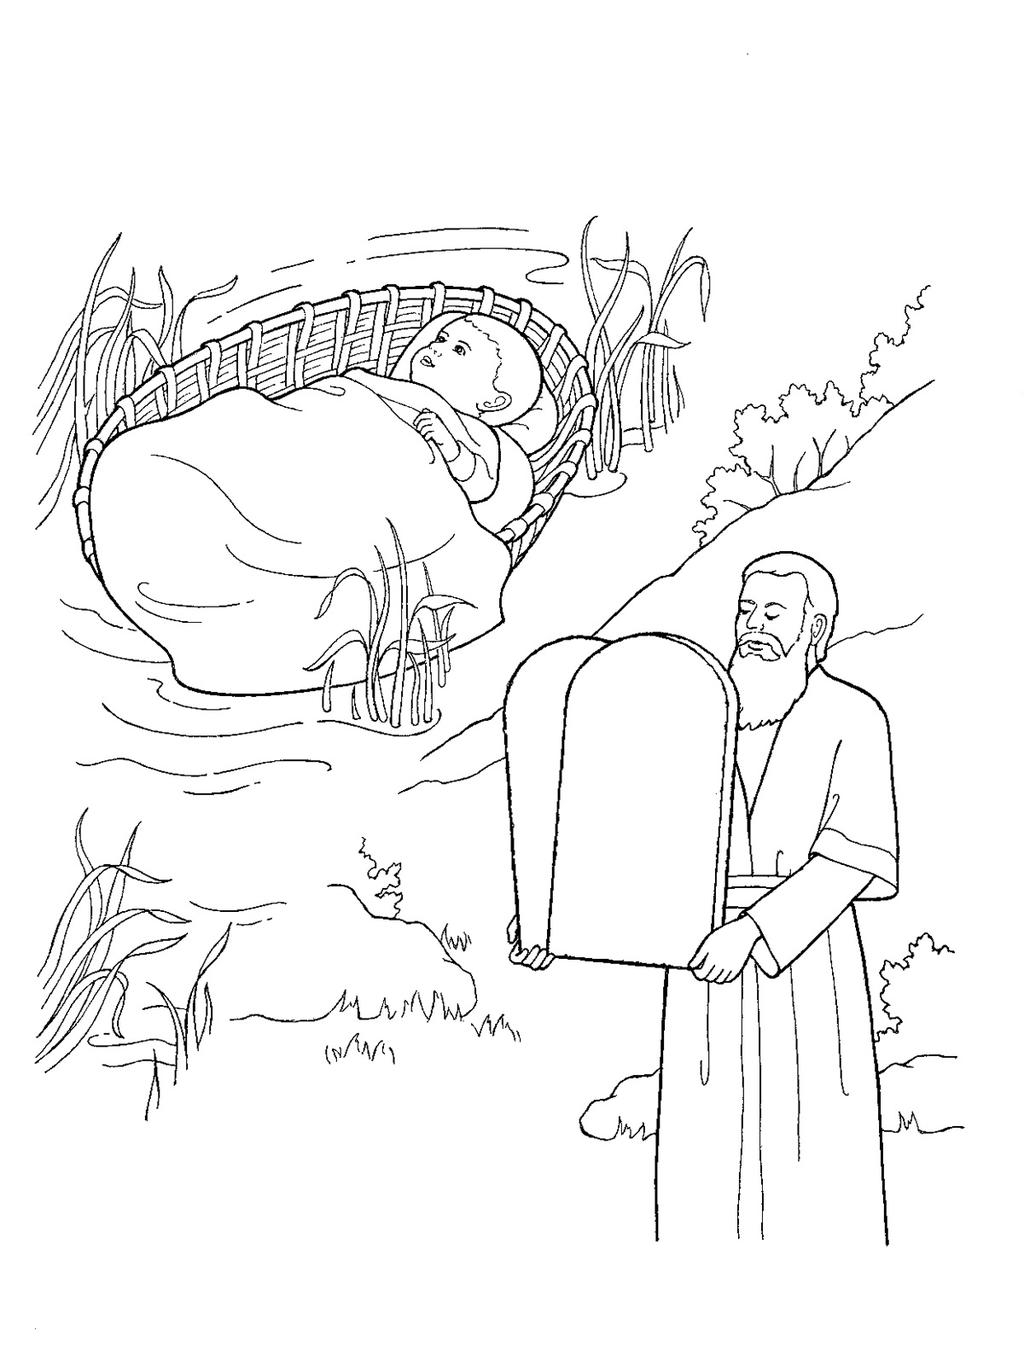 10 Commandments Coloring Pages 10 Commandments Coloring Pages Moses Ten Kid Colorings